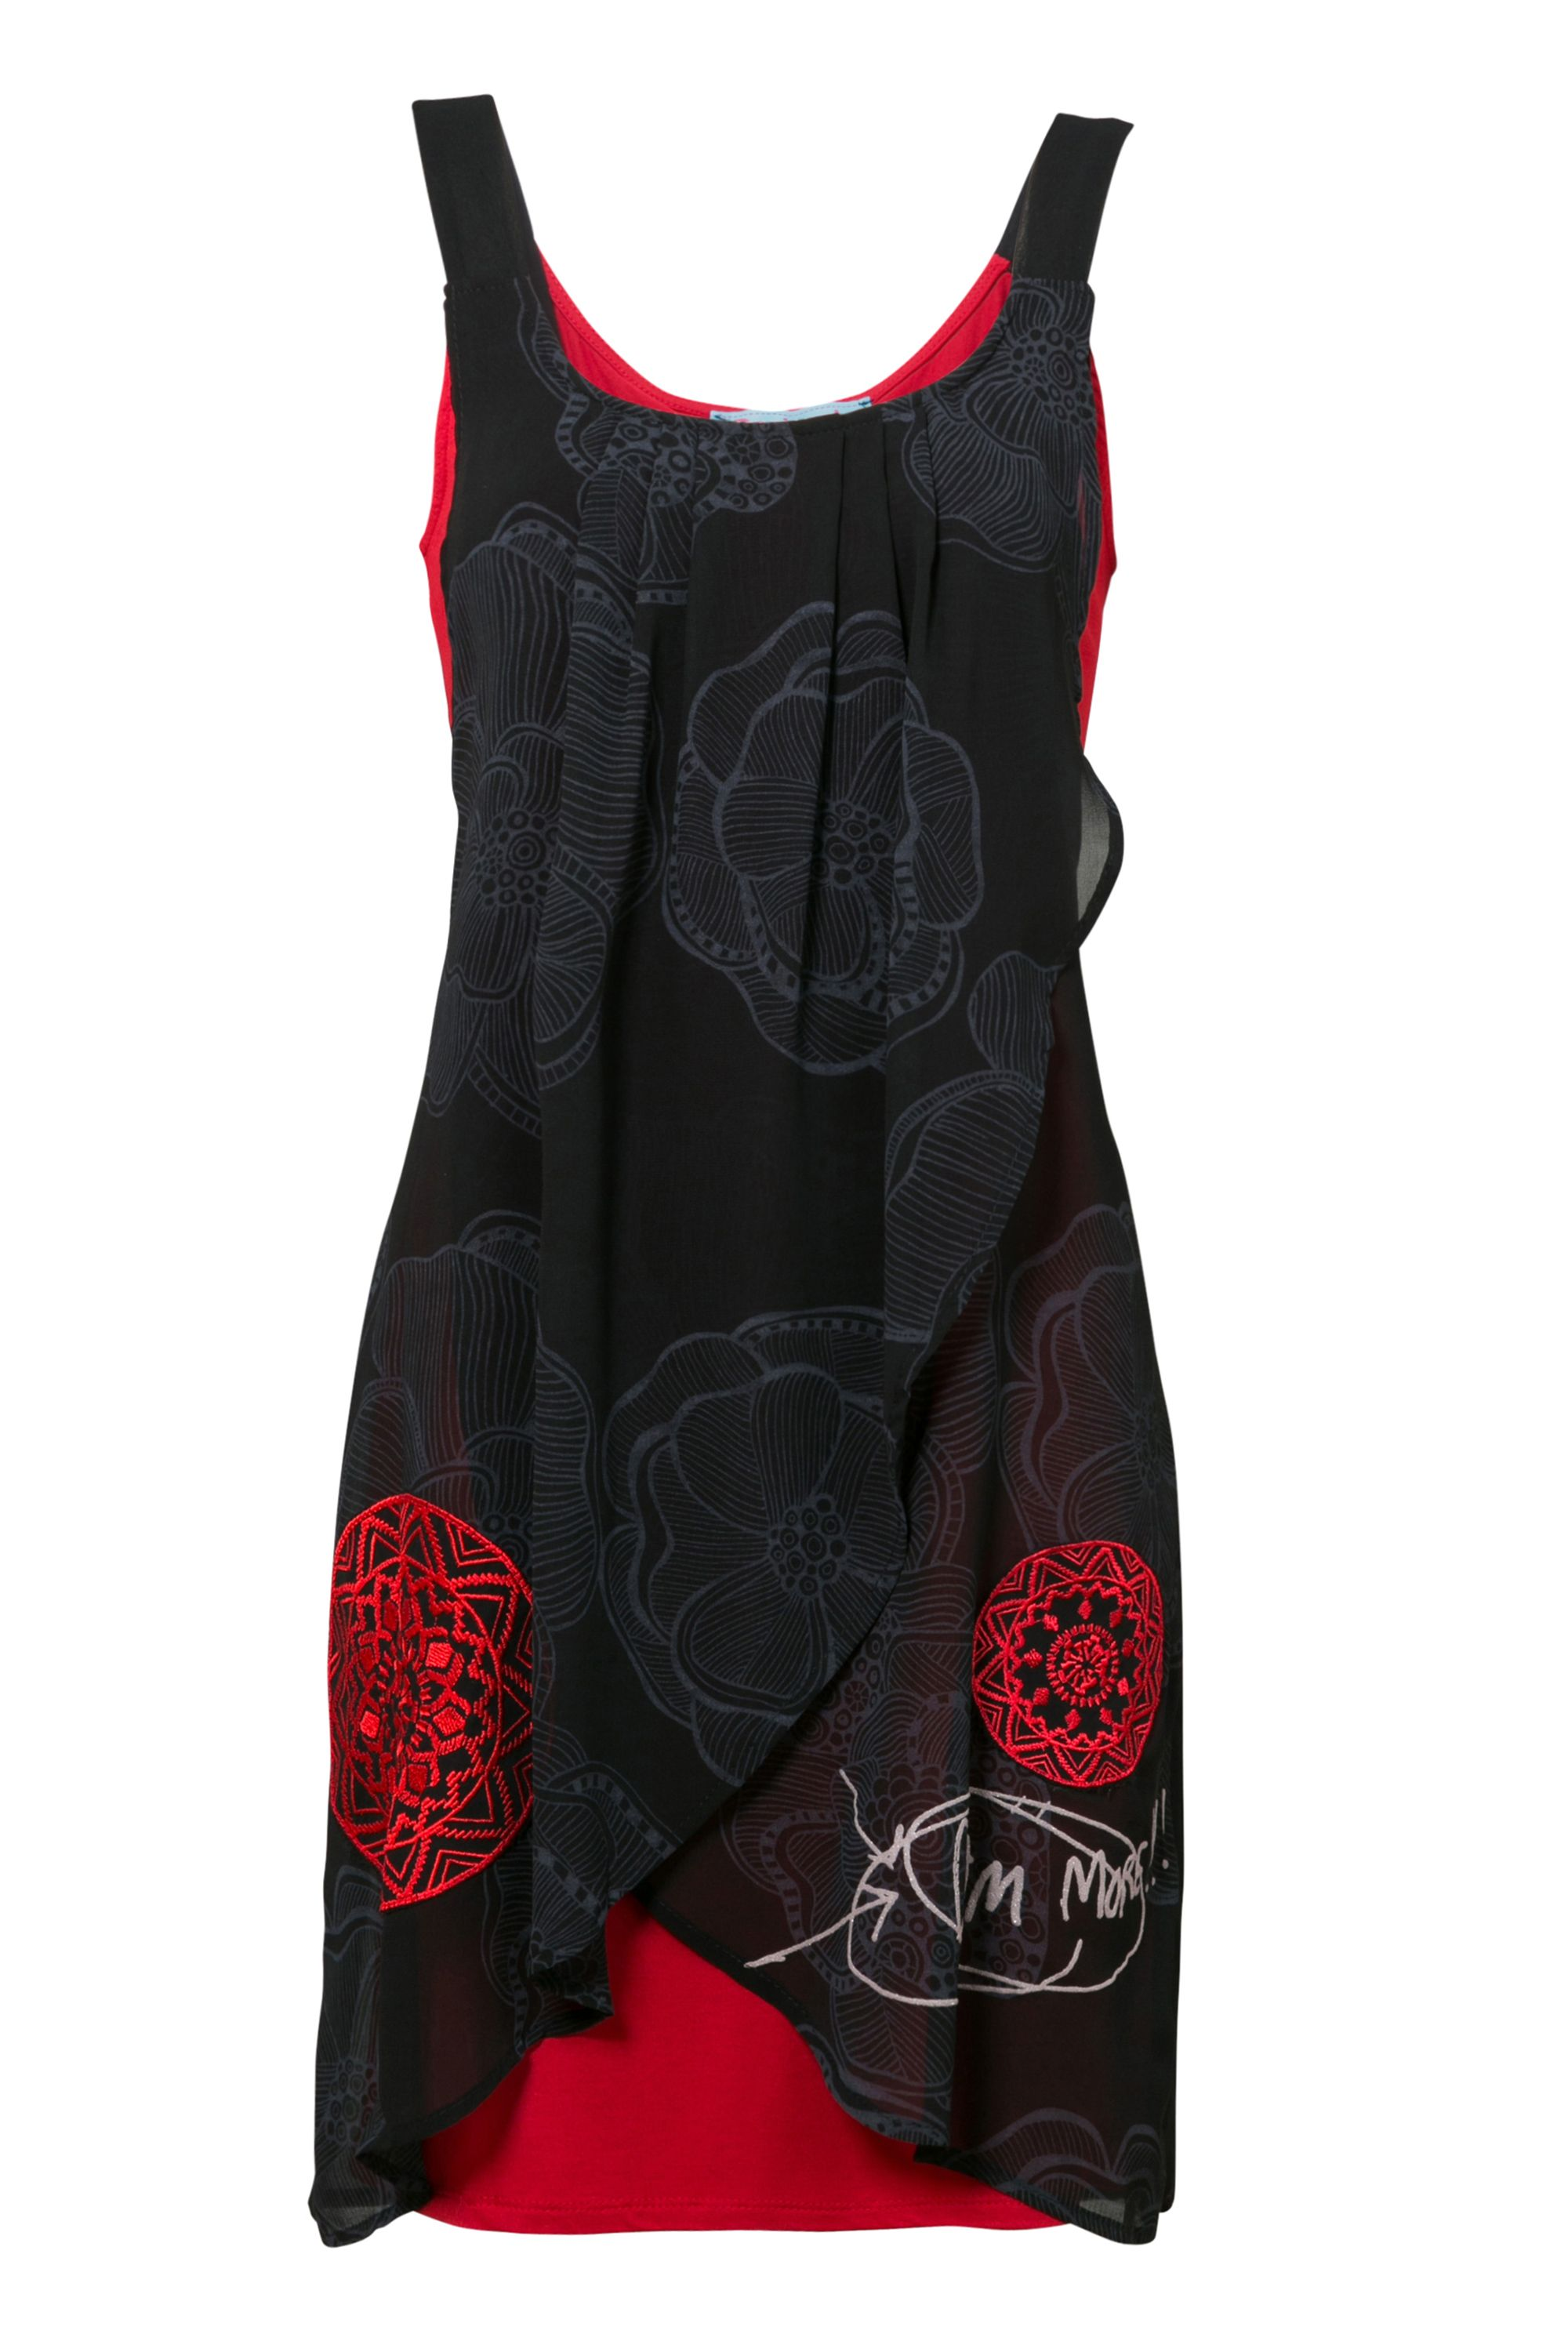 Desigual Dress Blackville Straps, Black